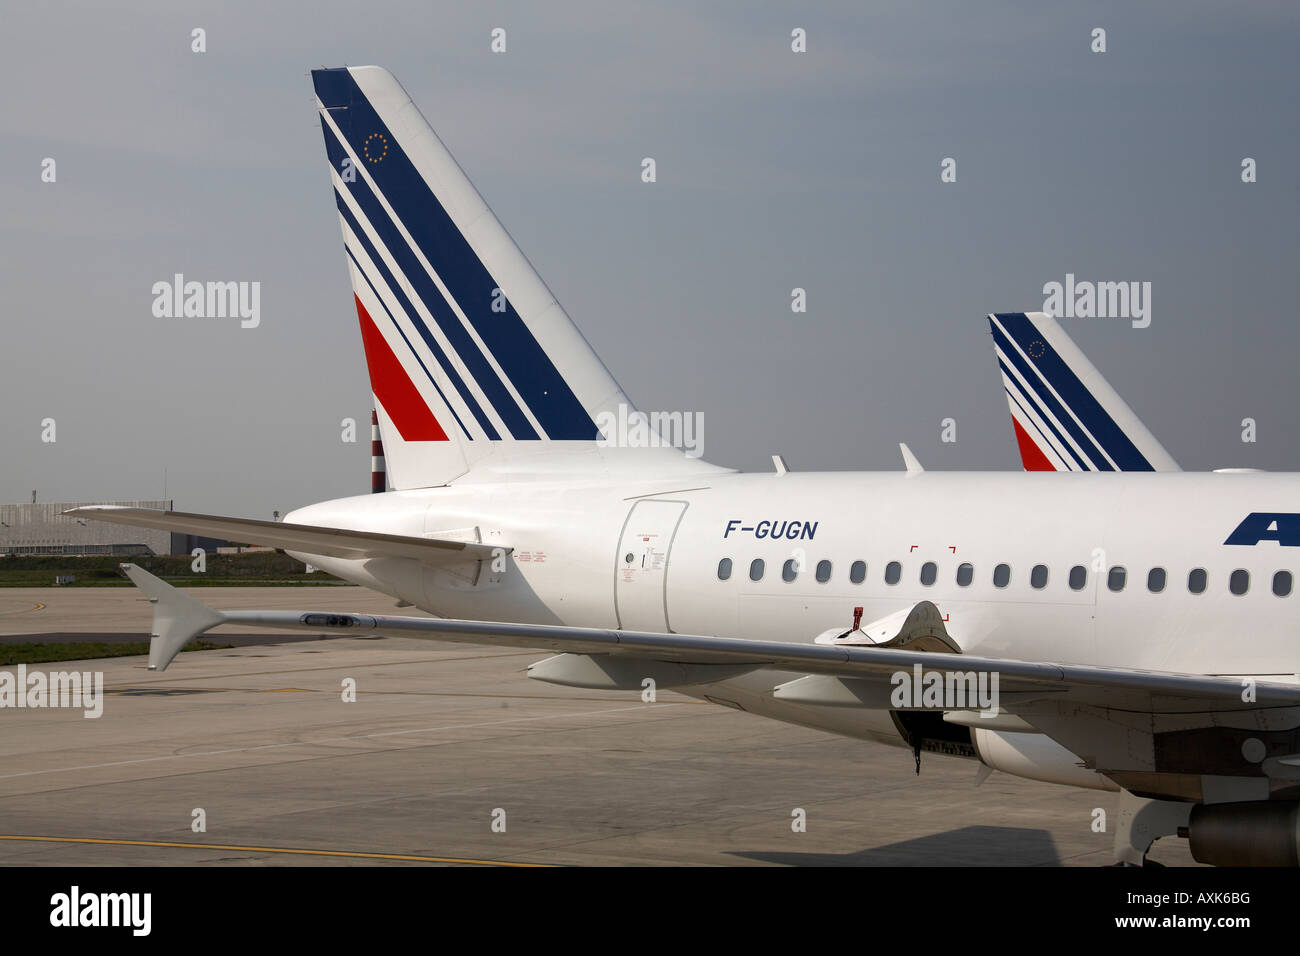 Air France Airbus A318 111 tailplane on apron at Charles De Gaulle International Airport Paris France - Stock Image